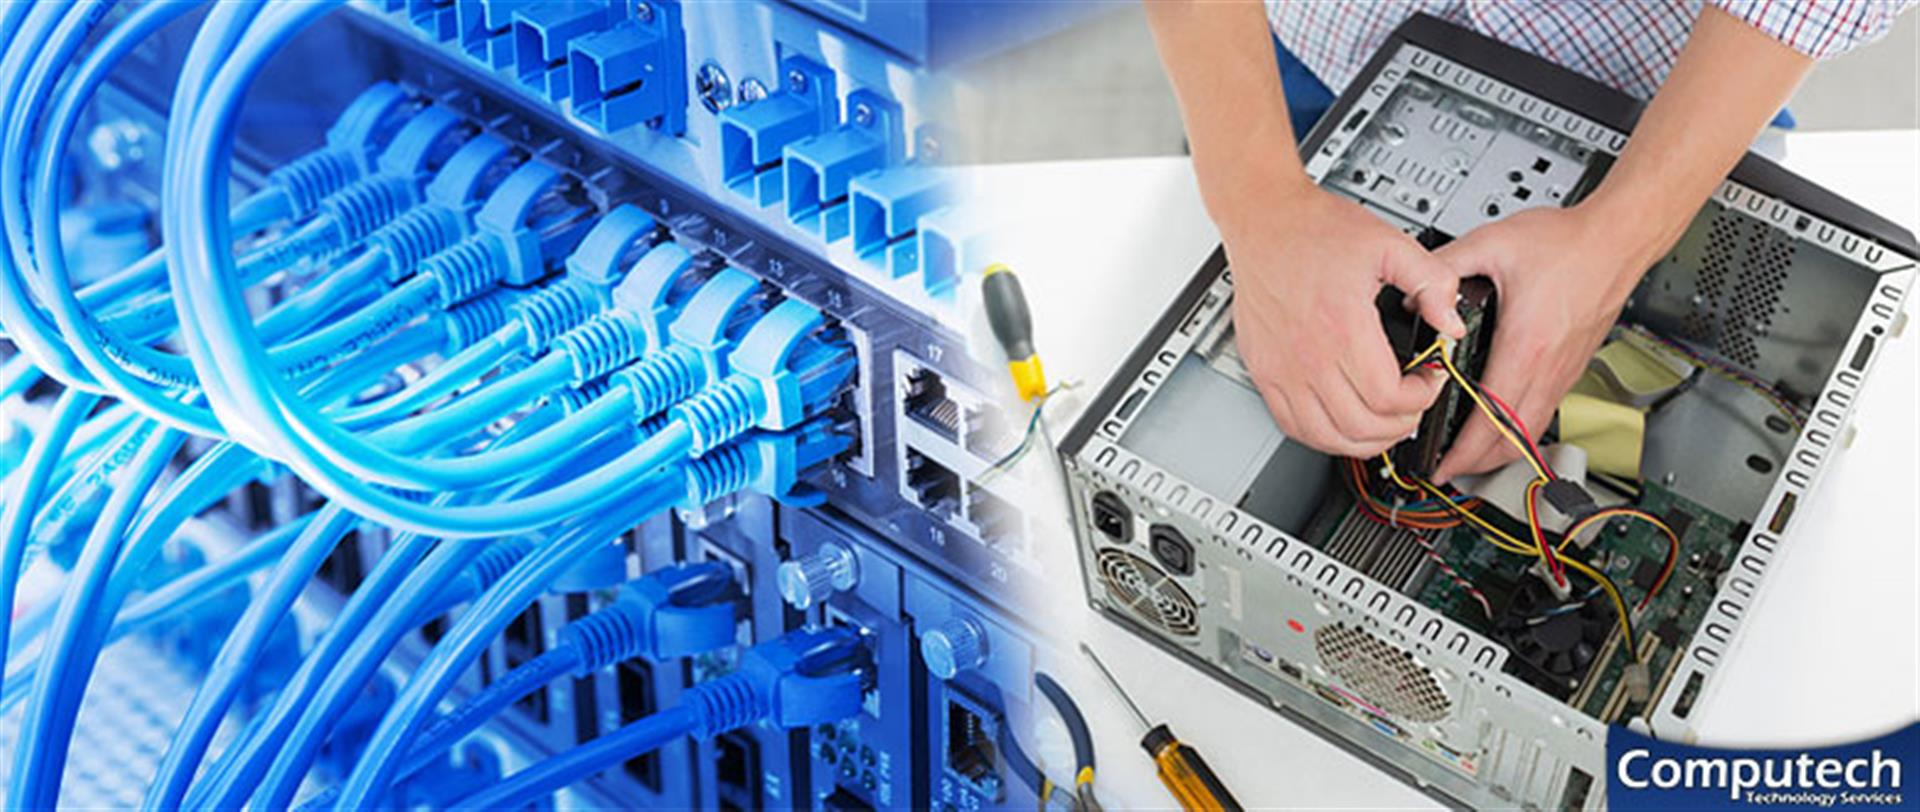 Norris Tennessee Onsite PC & Printer Repairs, Networks, Voice & Data Cabling Services